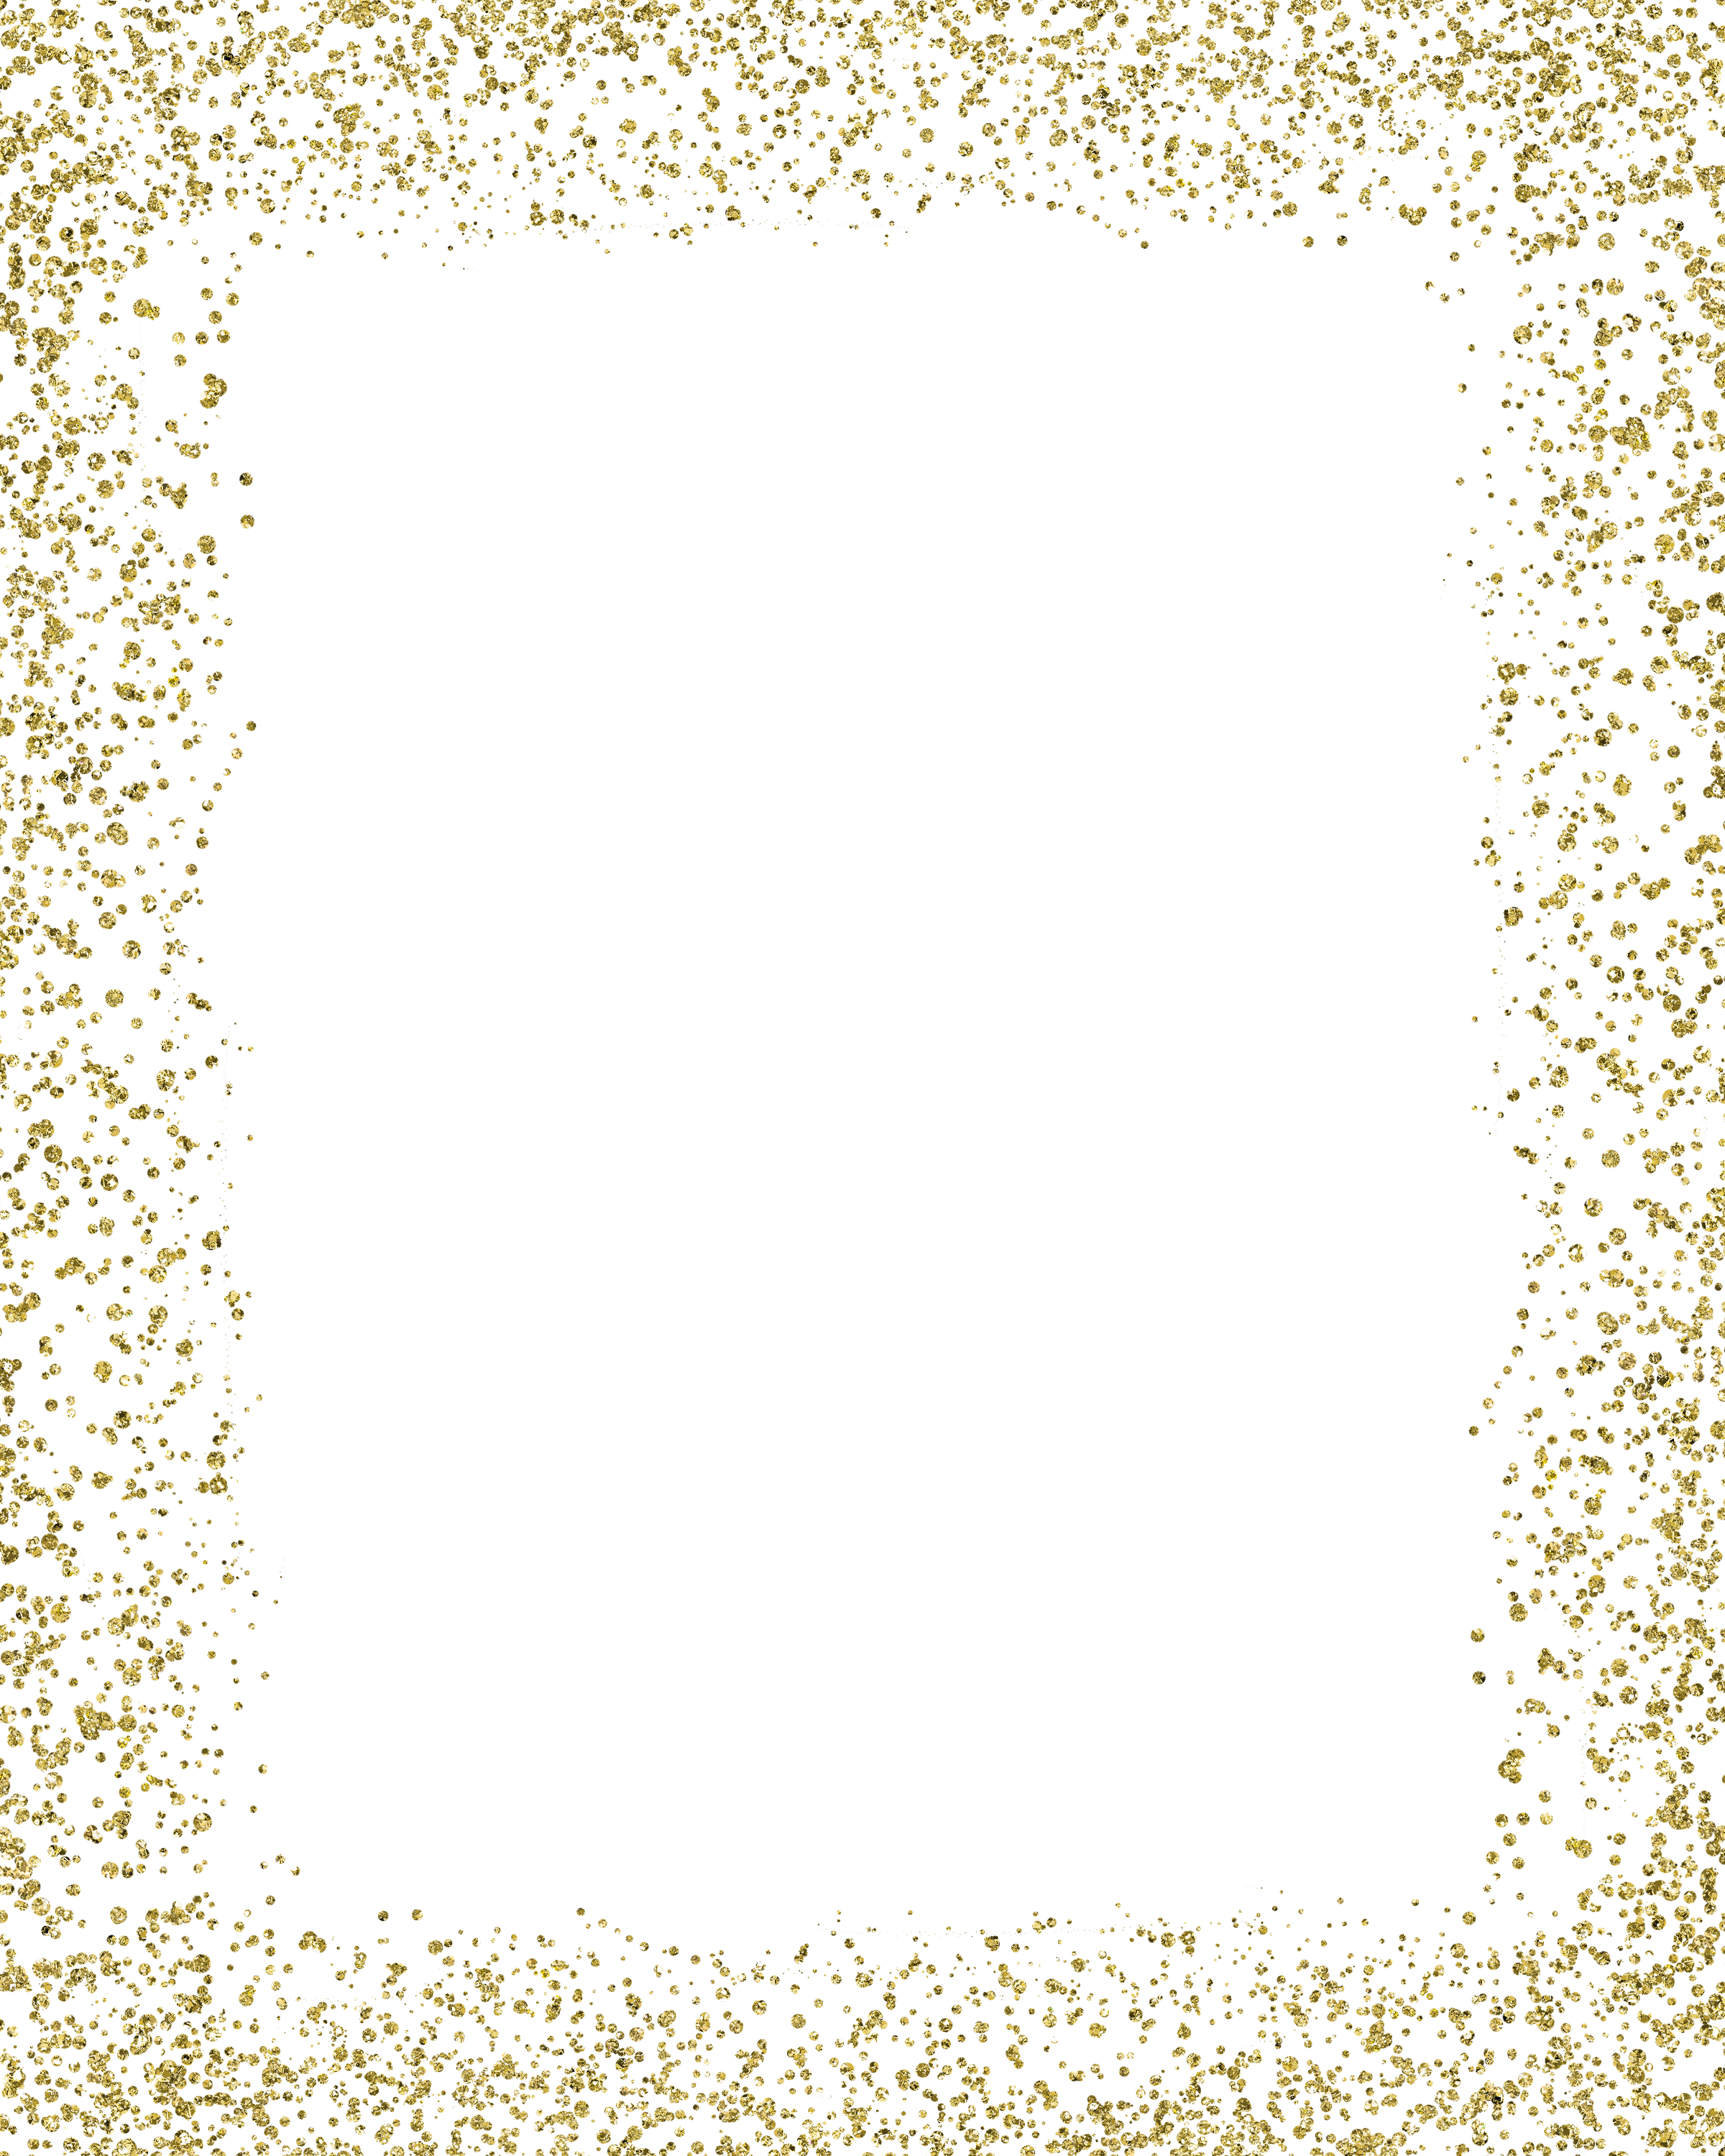 Glitter border png. Gold mime color transprent